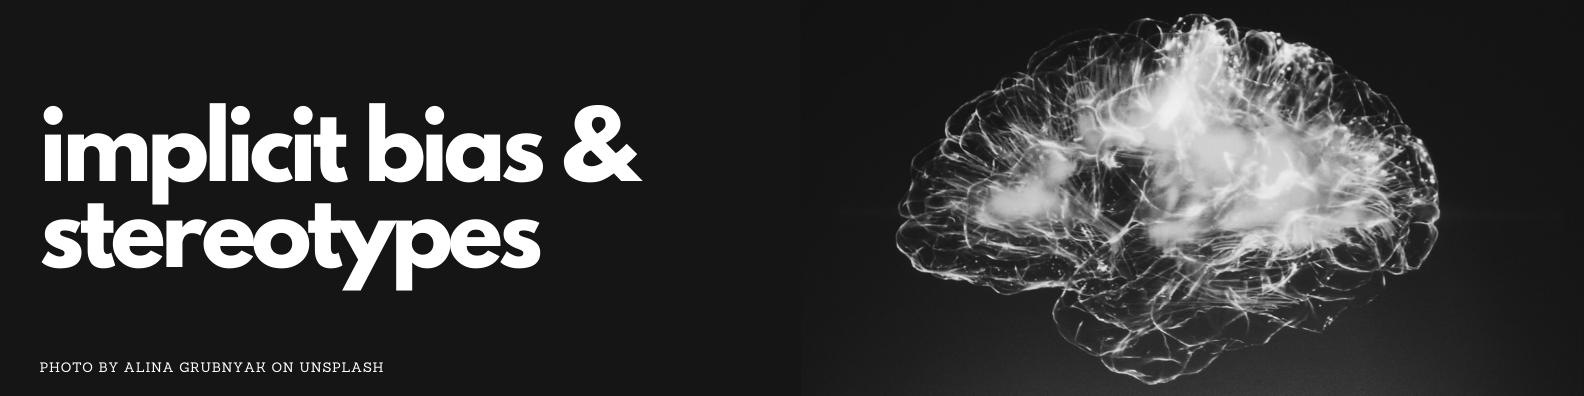 Implicit bias and stereotypes banner. Photo of brain by Alina Grubnyak on Unsplash